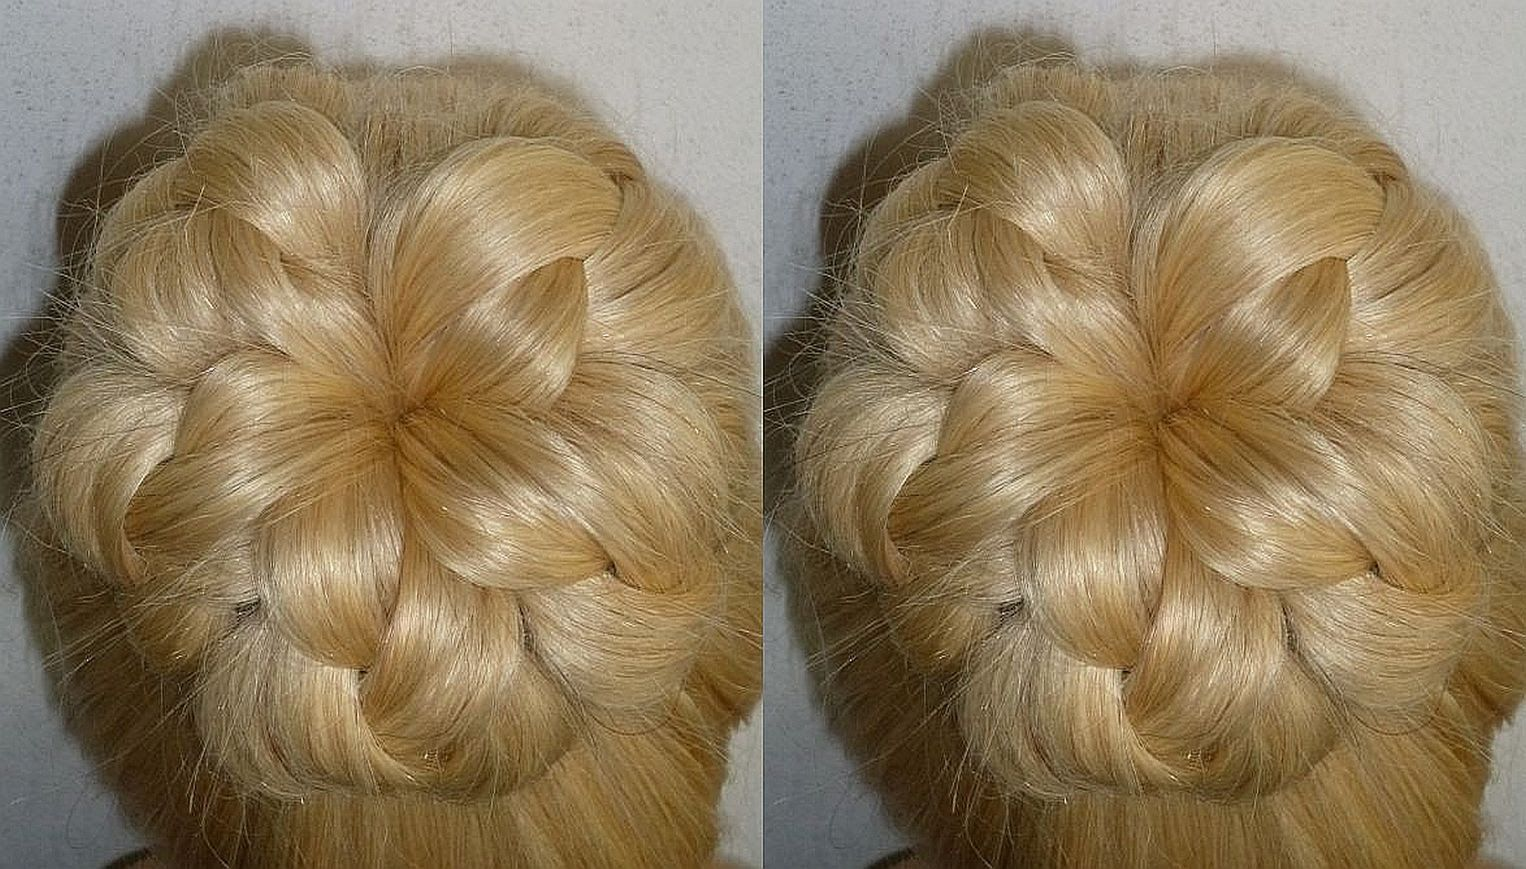 Easy and quick promwedding hairstyleevening donut hair bun updo